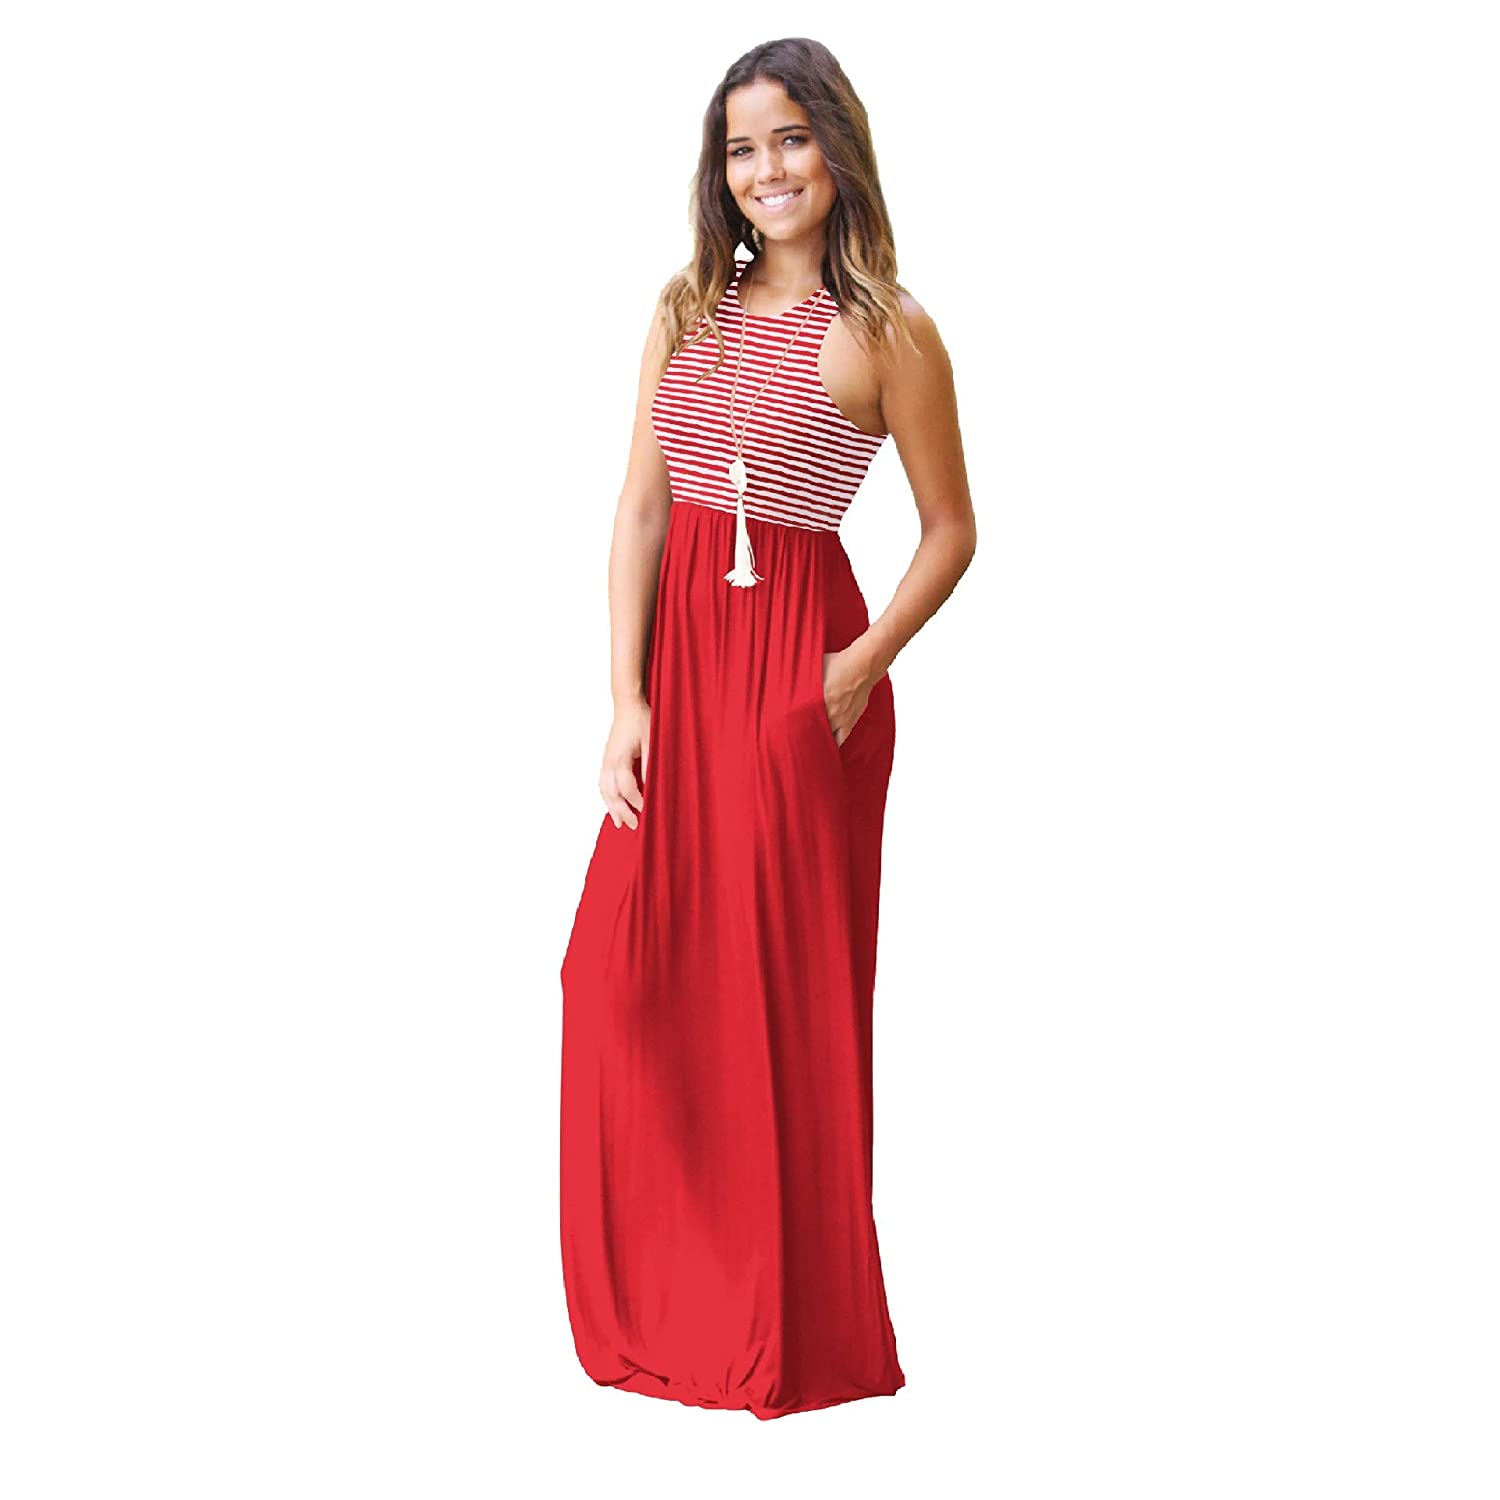 2019 authentic incredible prices best shoes Minma Women Sleeveless Tunic Maxi Dress Racerback Plain Swing Maxi Dresses  Casual Long Dress with Pockets